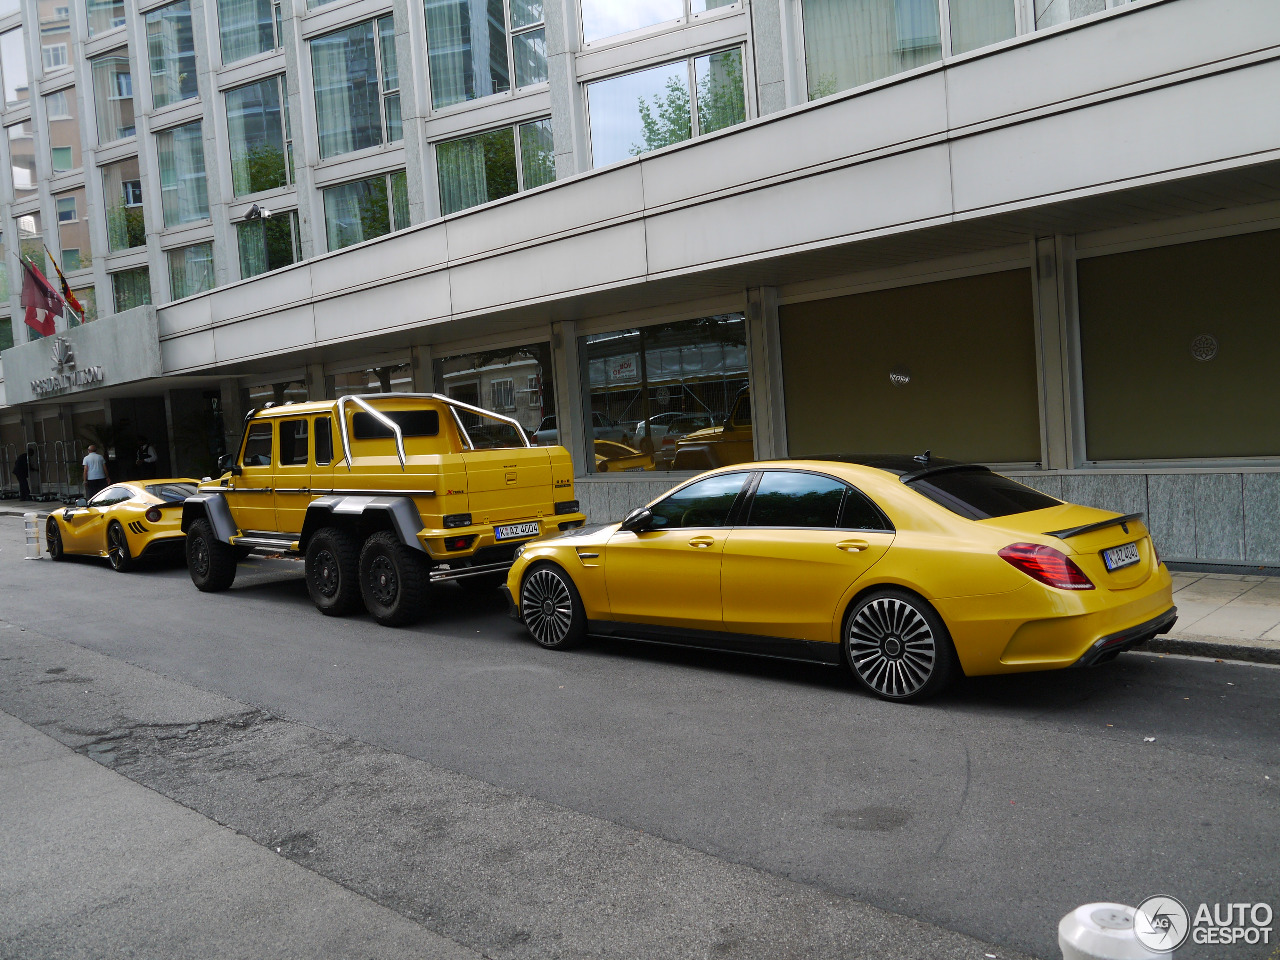 Mercedes Benz Mansory S63 Amg W222 29 August 2015 Autogespot